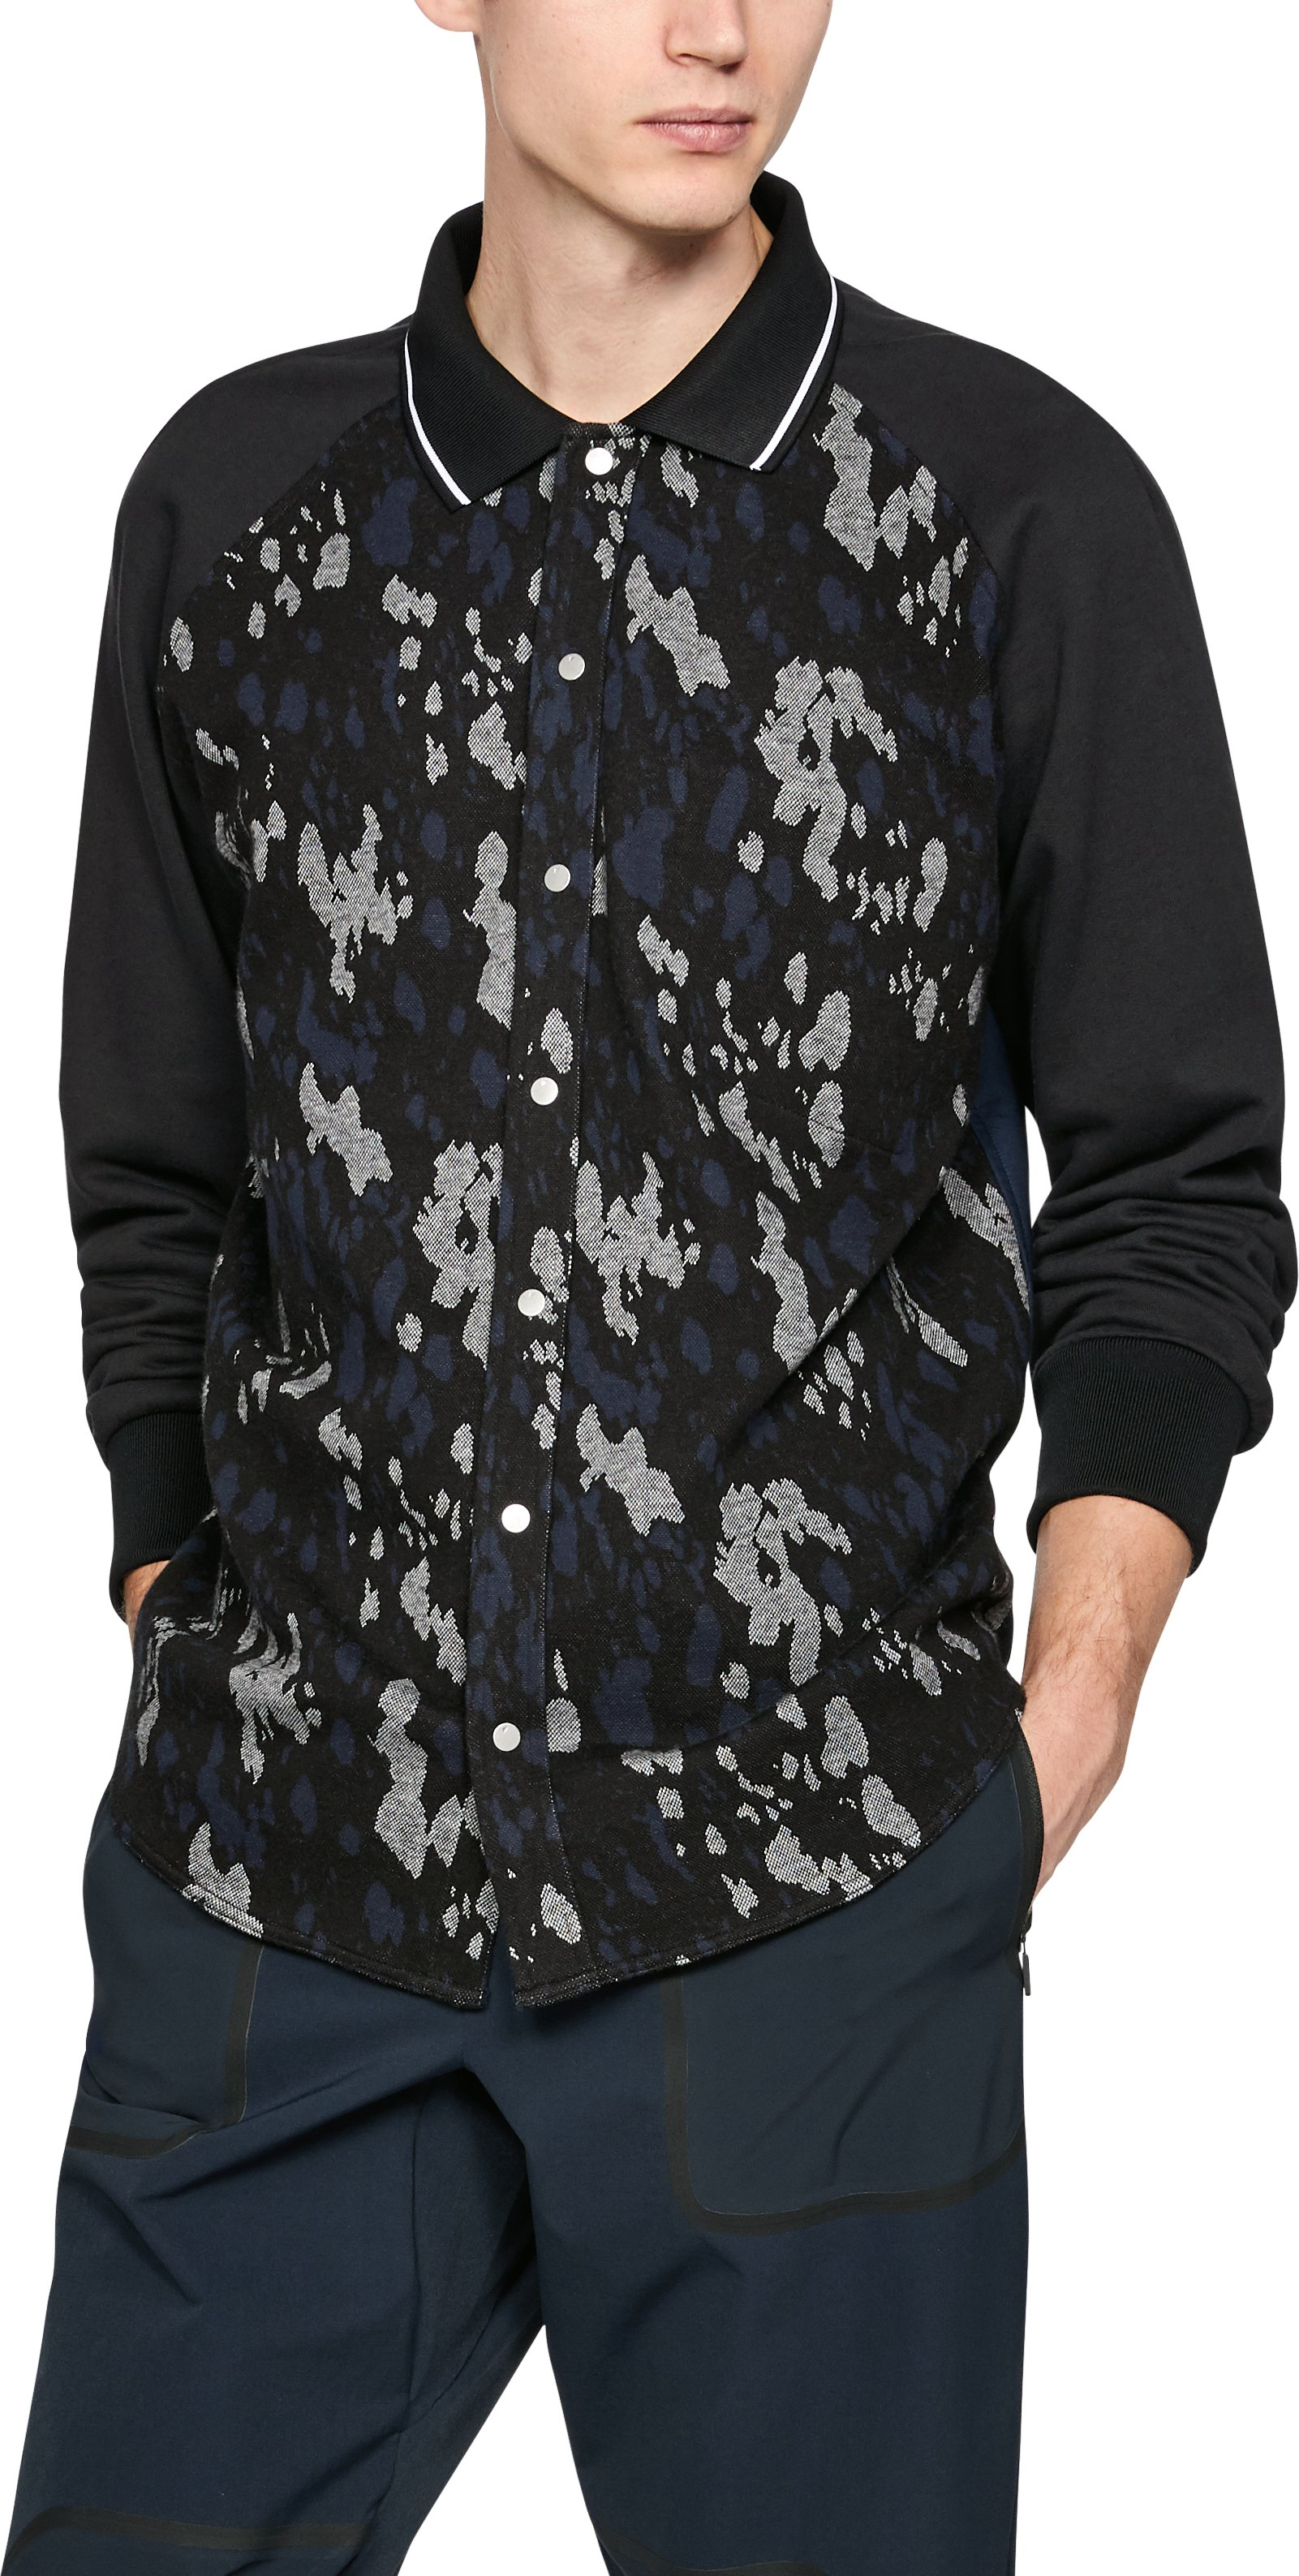 Sept Camo LS Button Shirt, Black